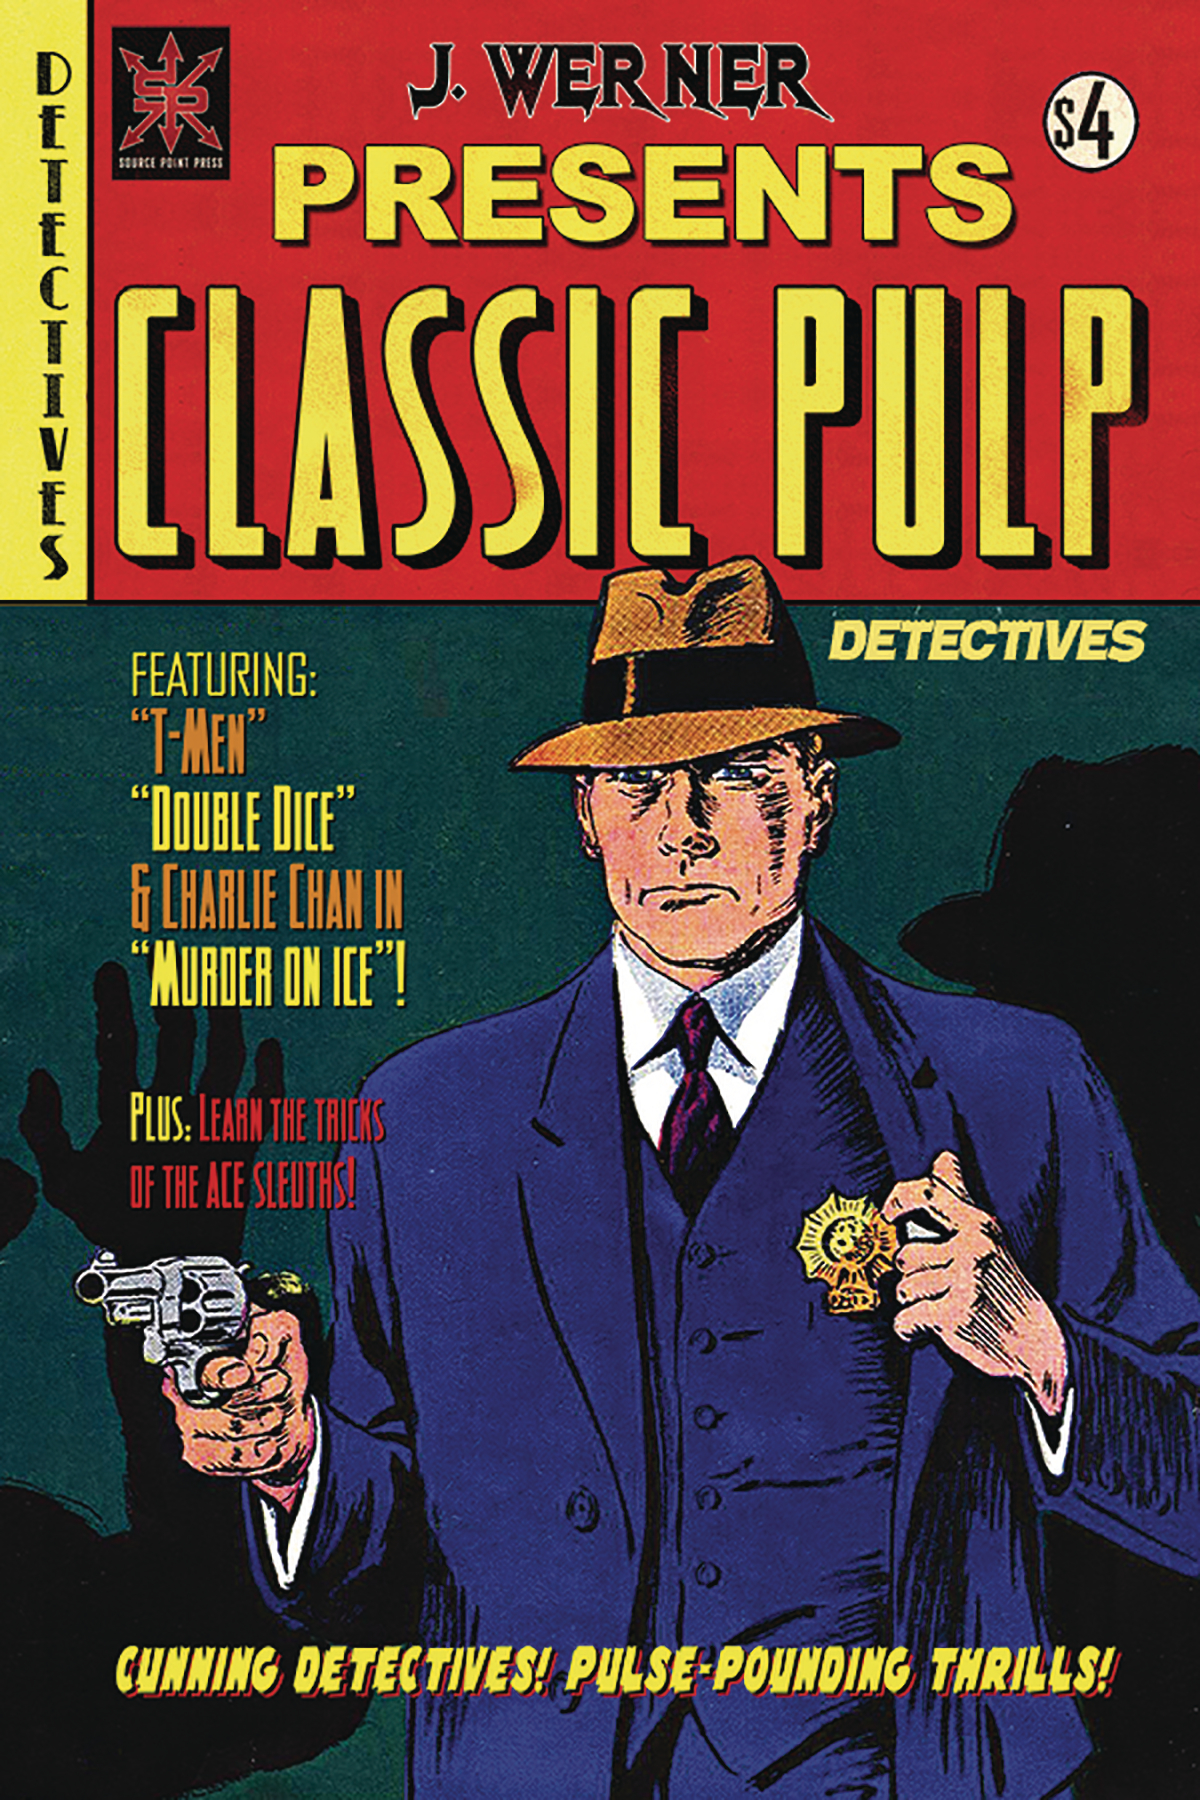 CLASSIC PULP DETECTIVES ONE SHOT